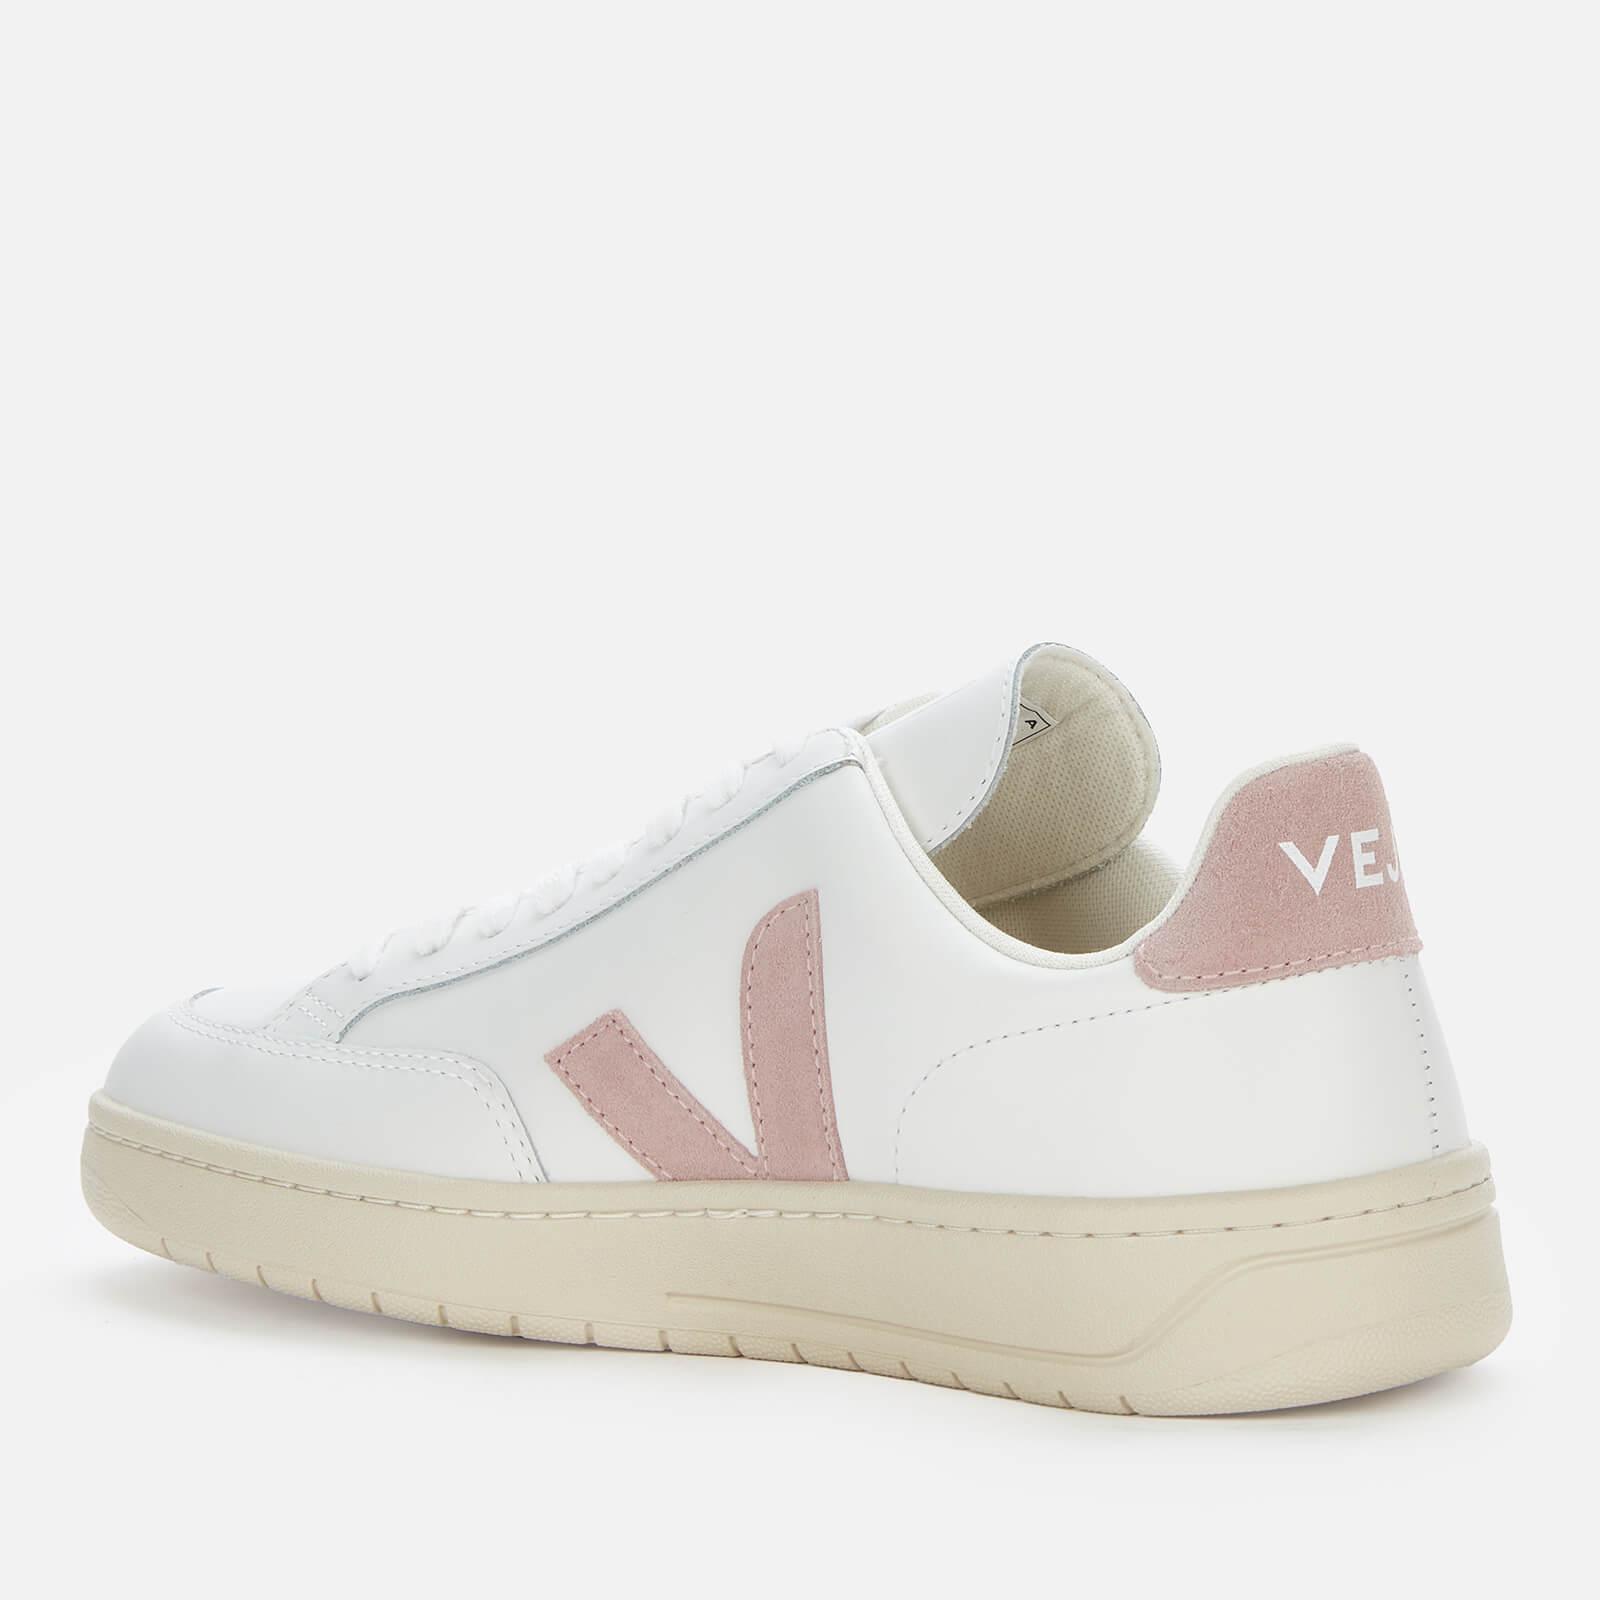 Veja Women's V-12 Leather Trainers - Extra White/Babe